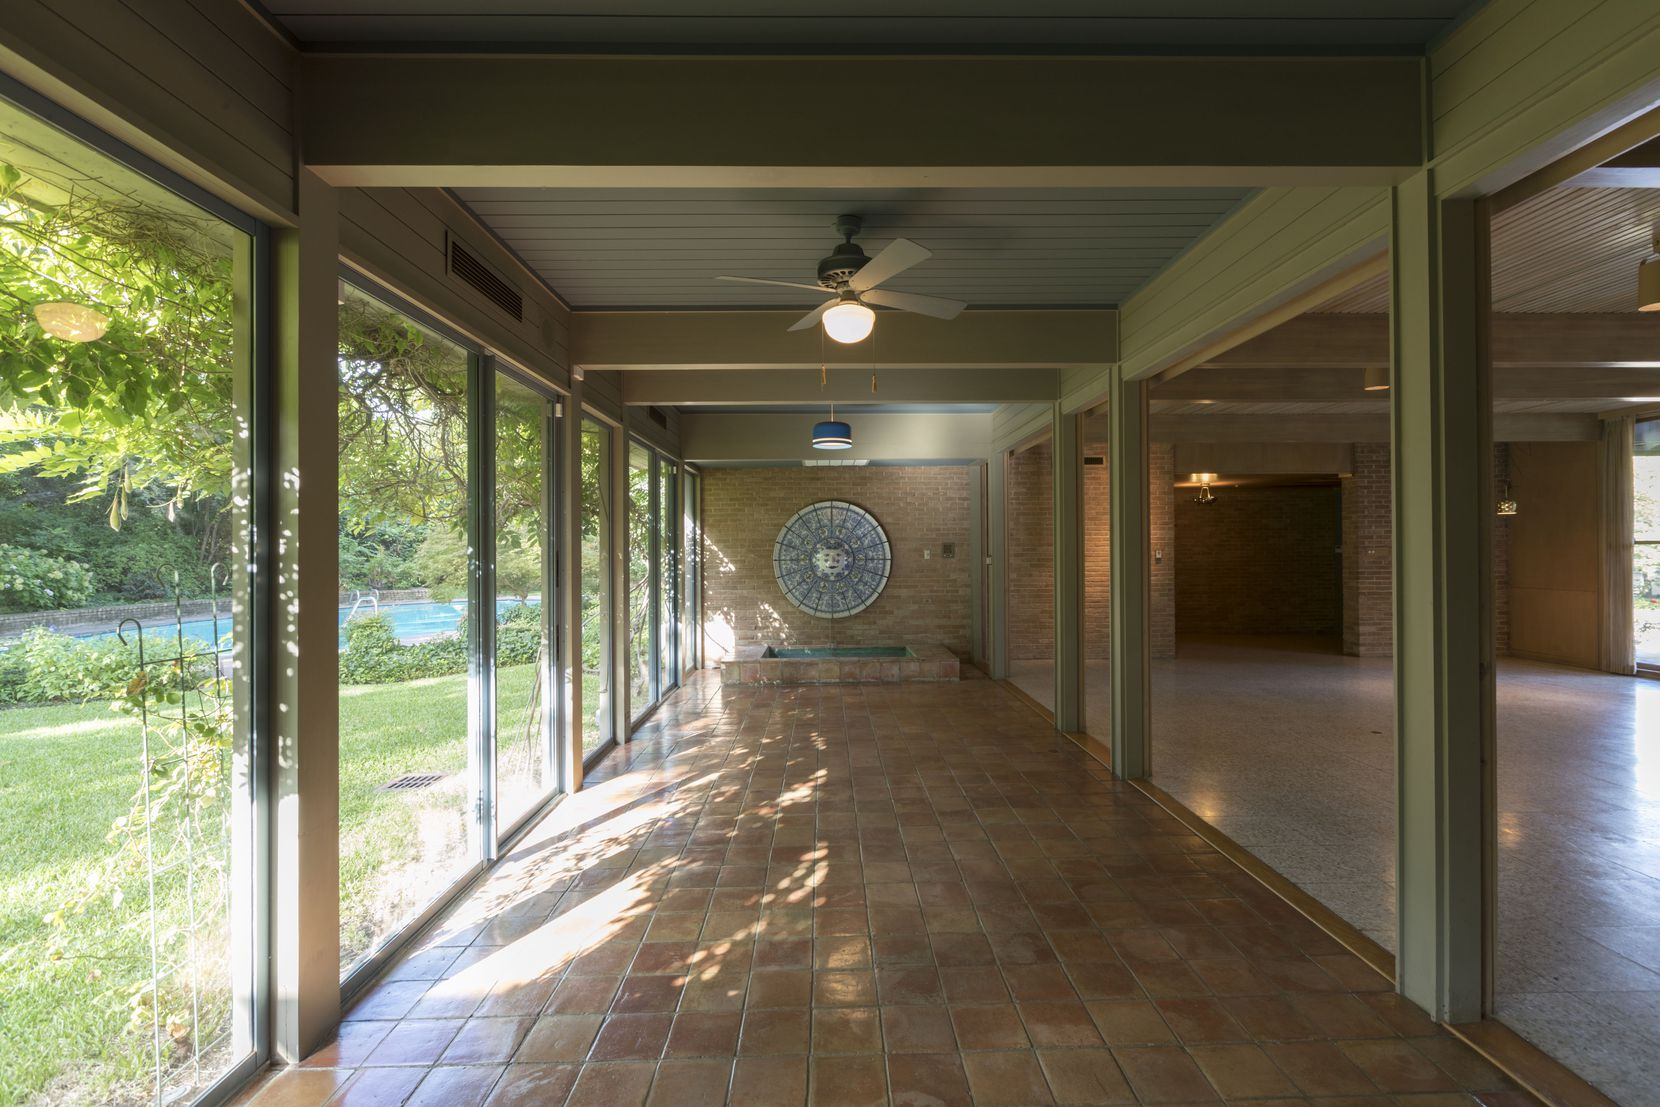 Floor-to-ceiling windows, terra cotta tile floors and covered verandas are signatures of O'Neil Ford's work.